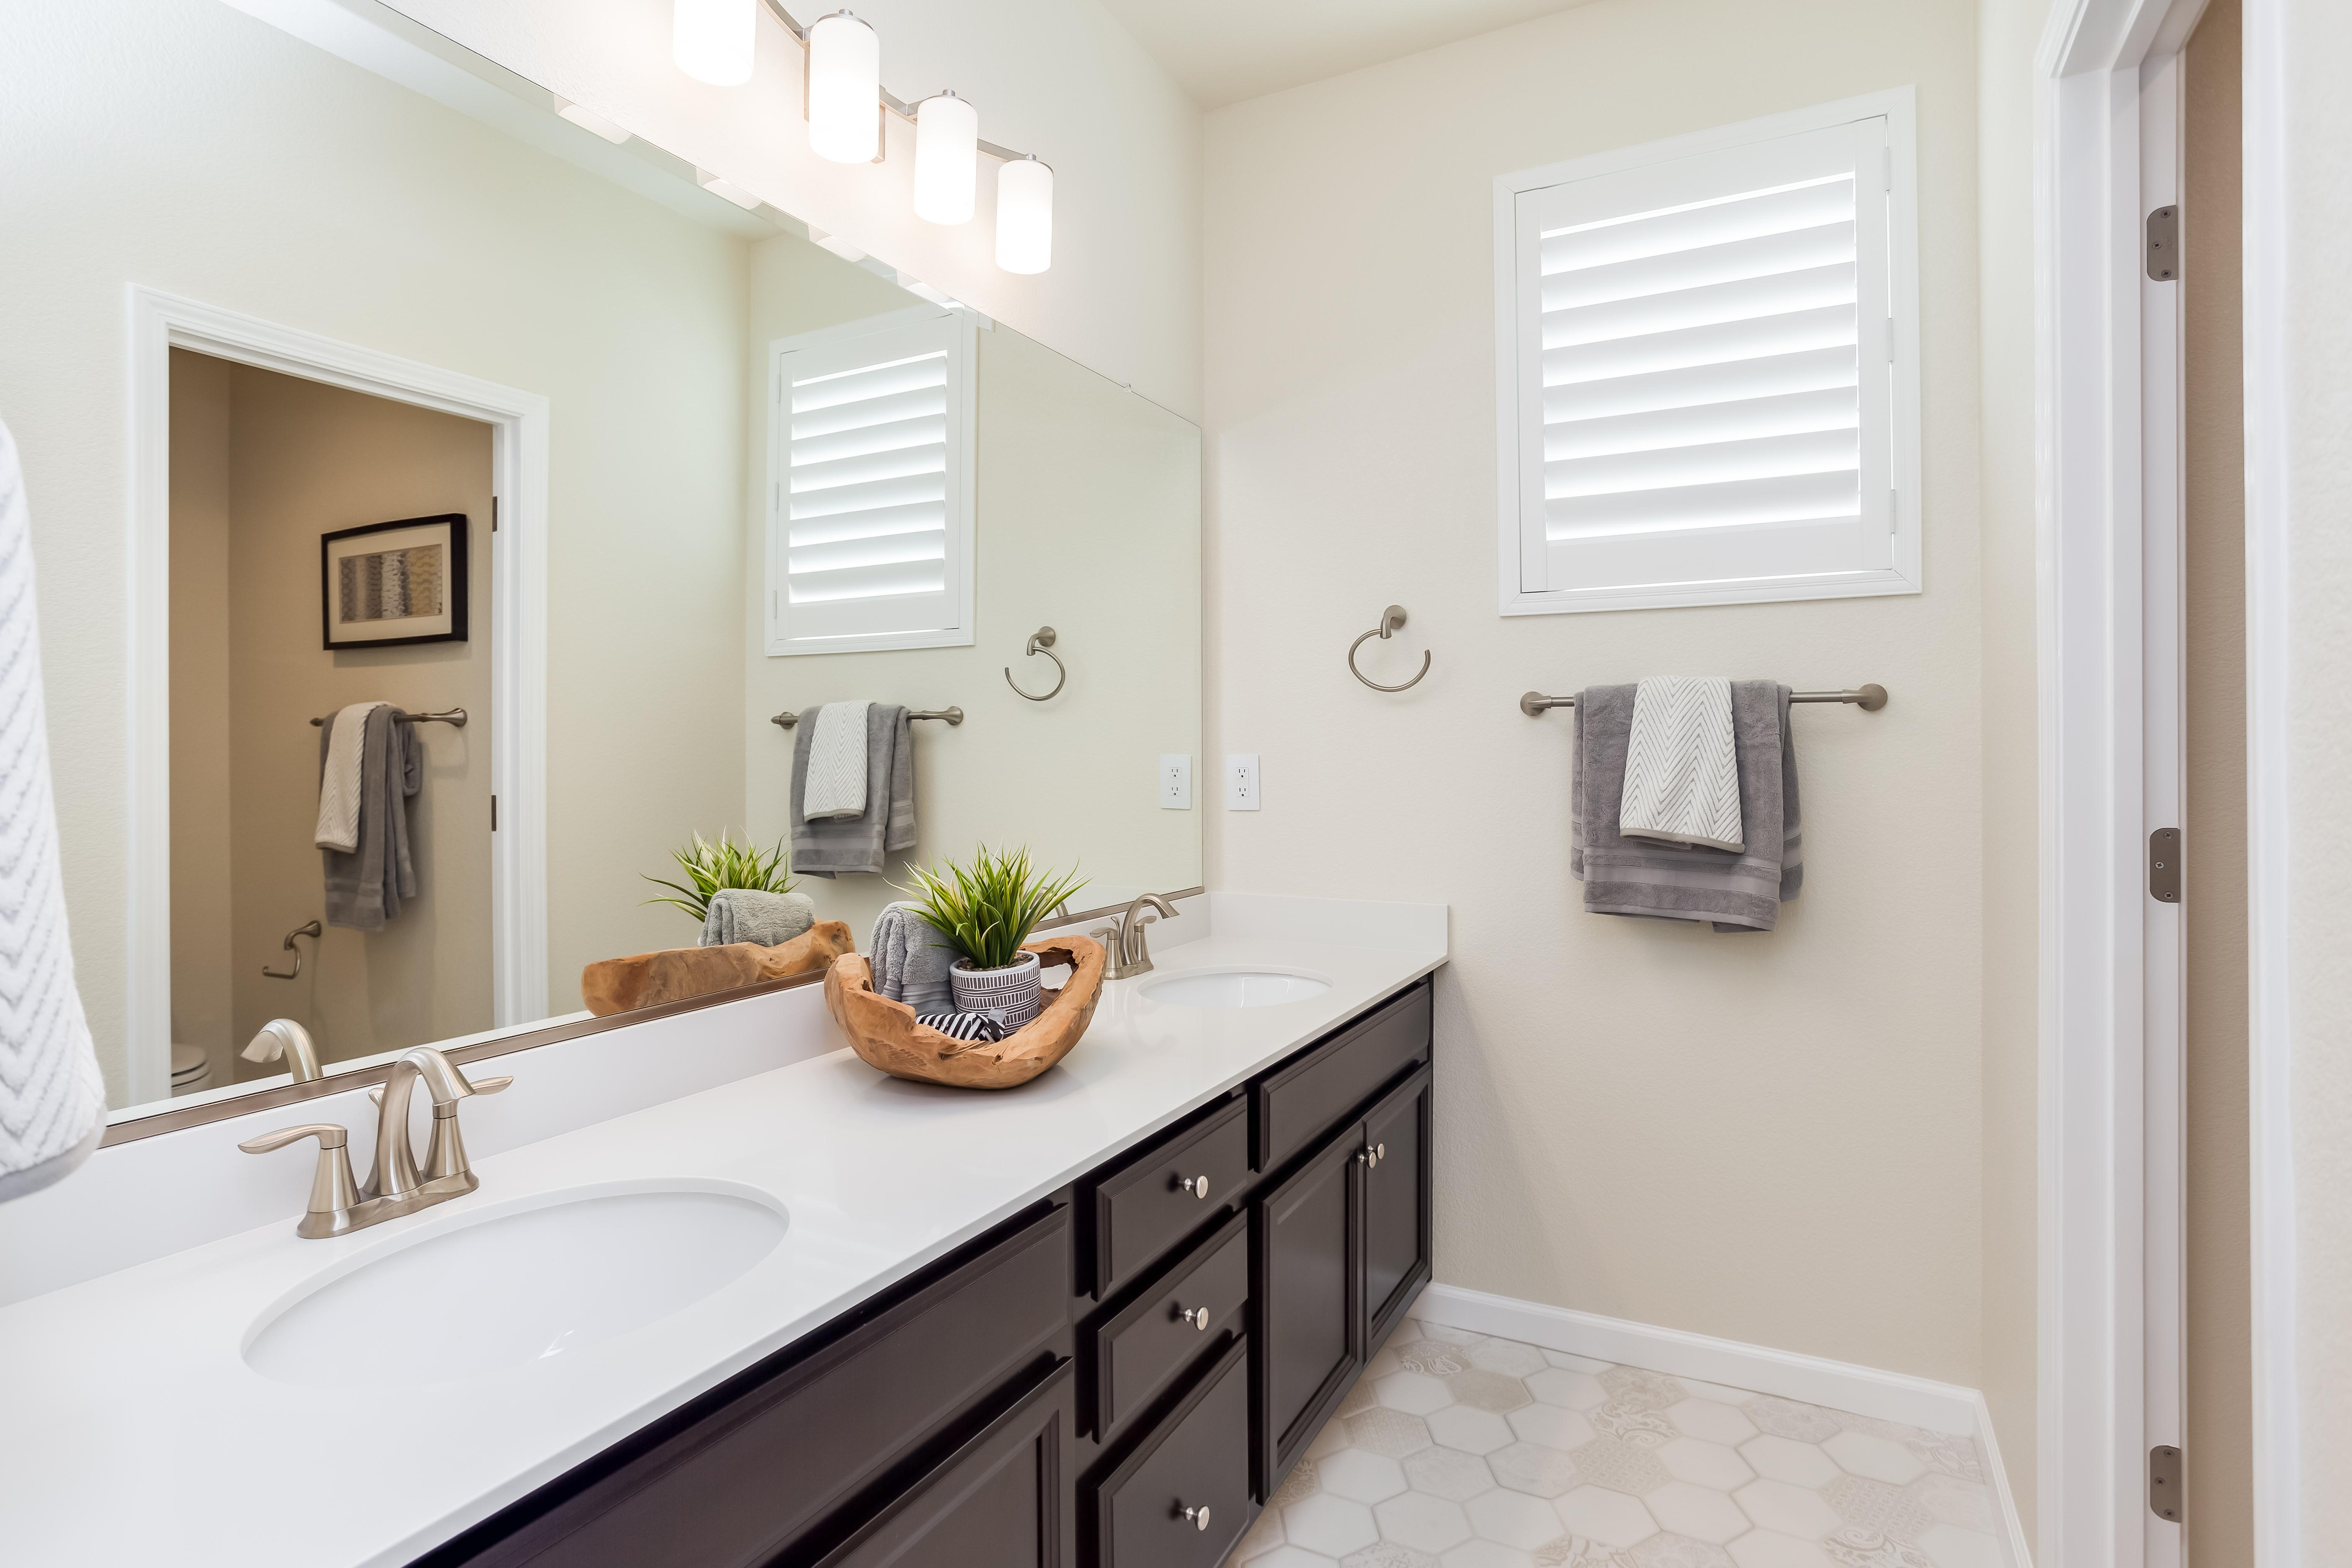 Bathroom featured in the Residence Four By Bright Homes in Merced, CA